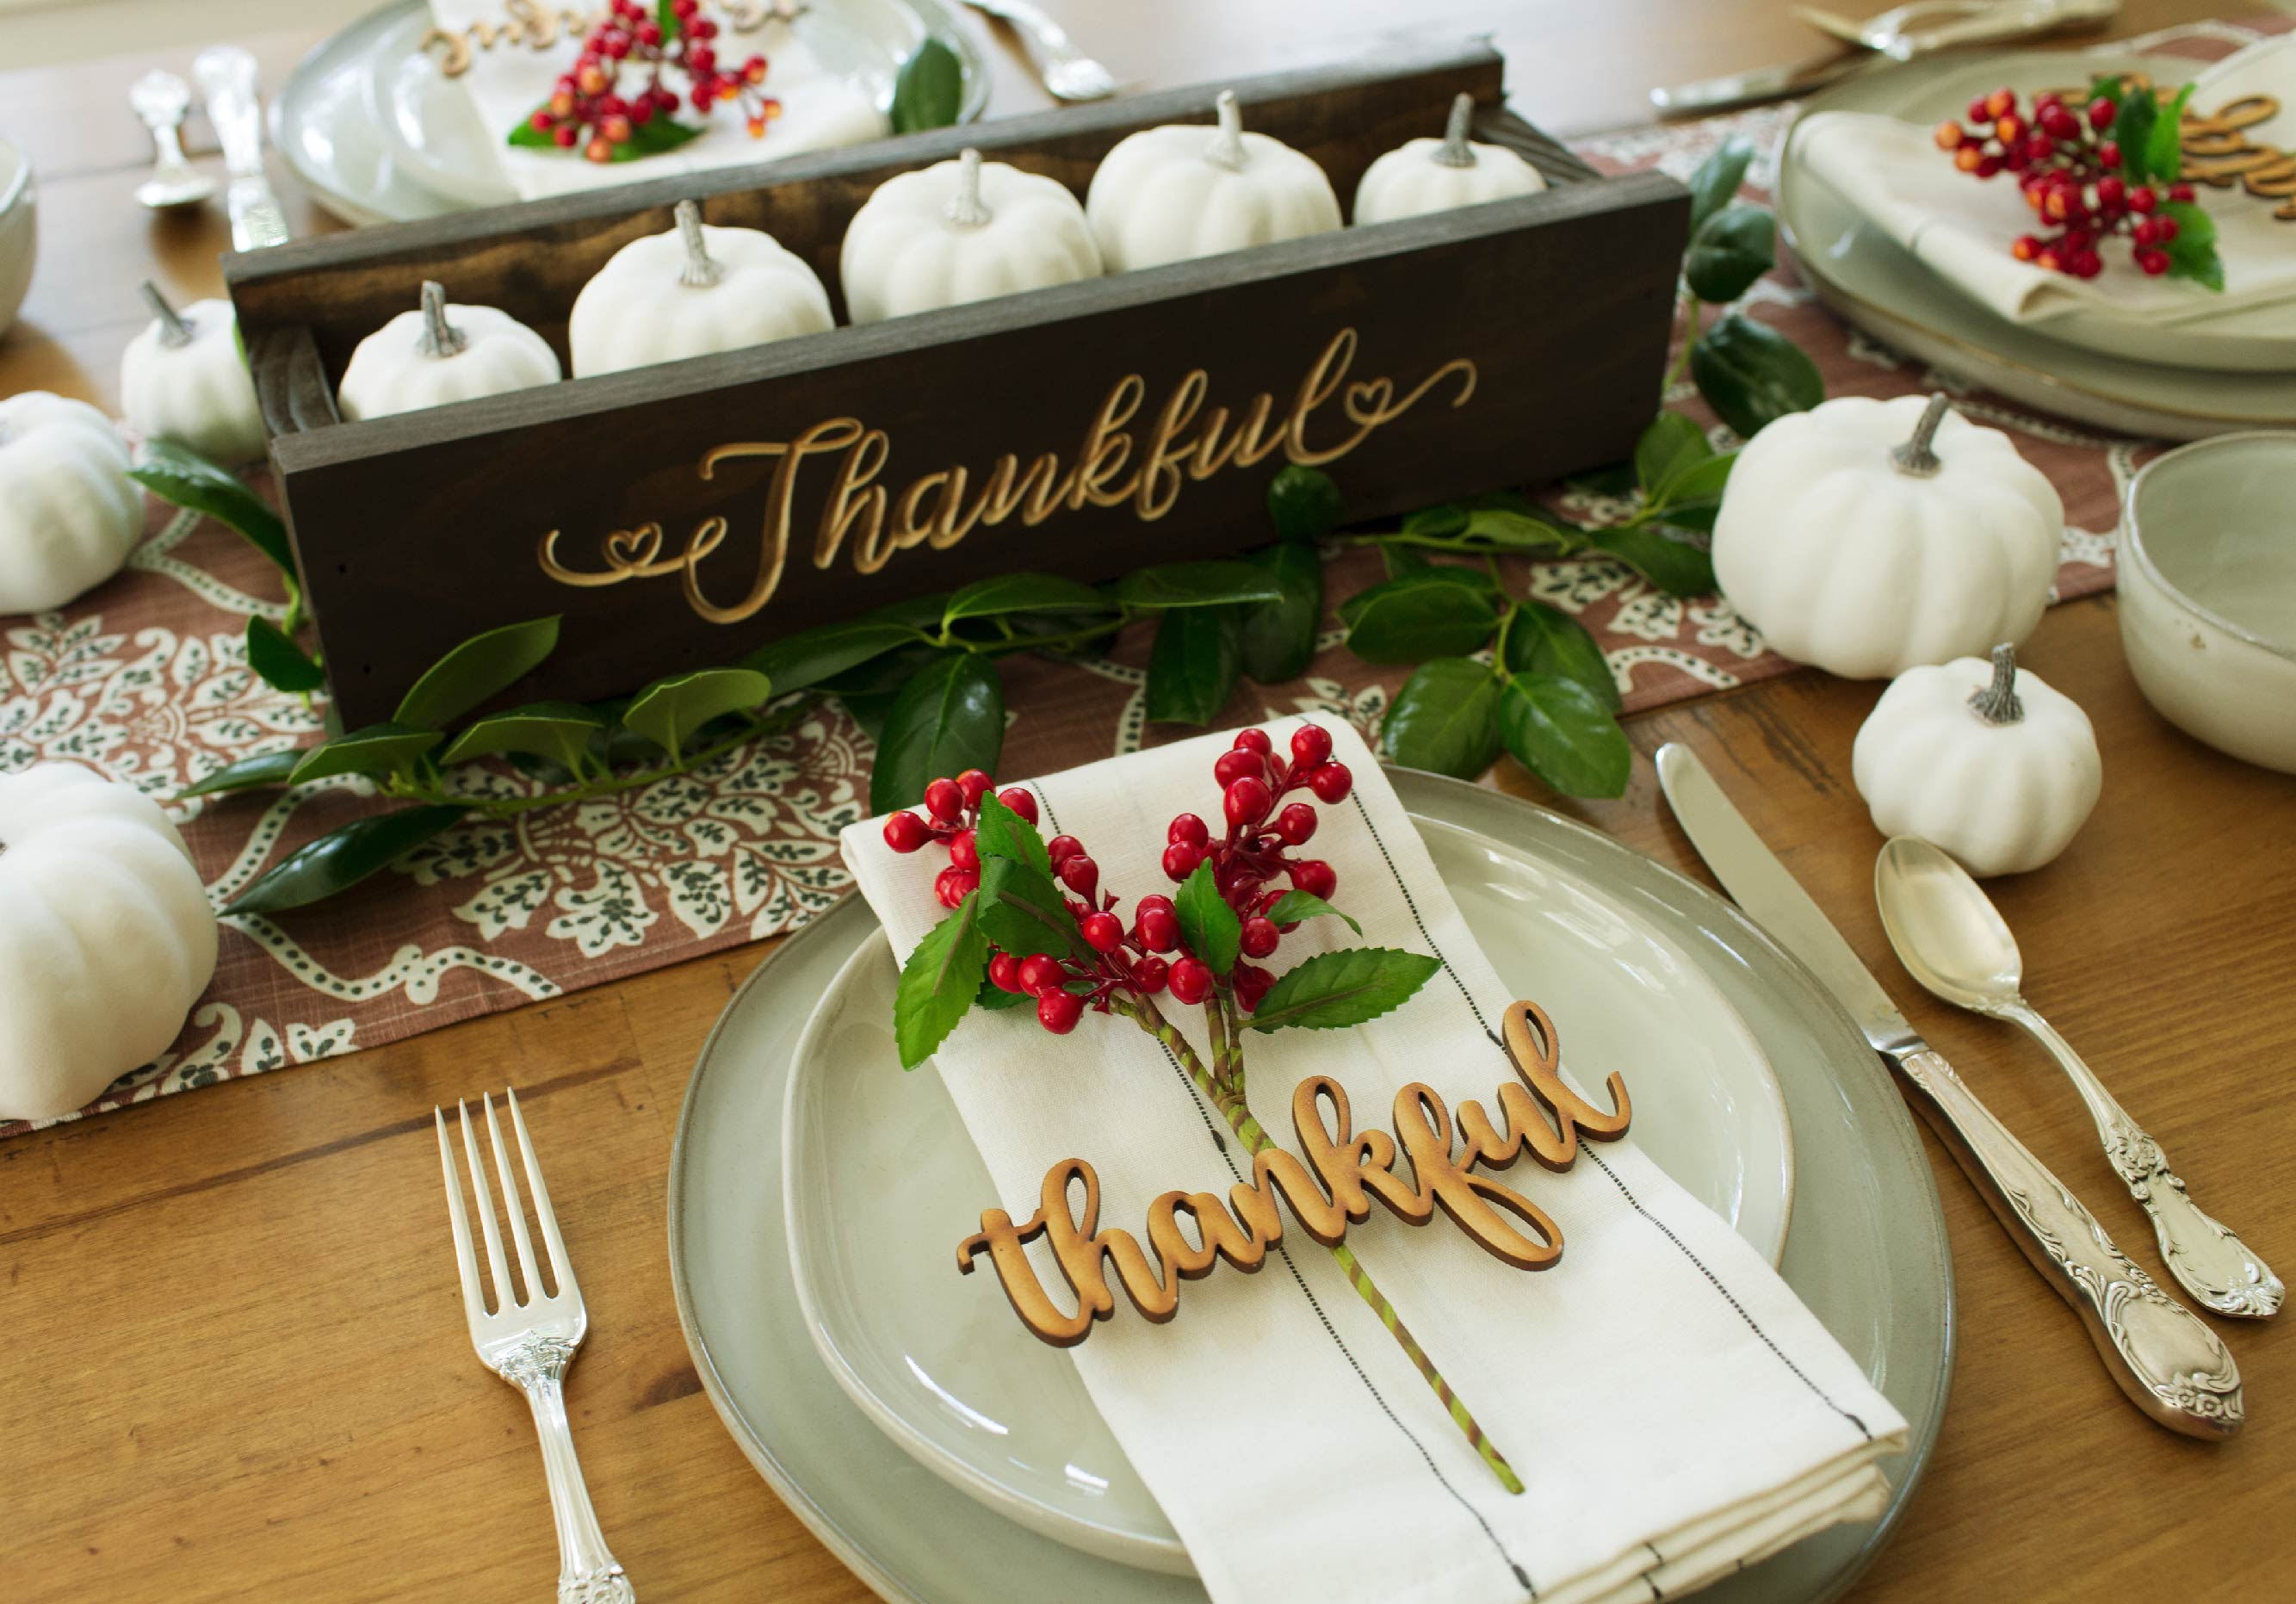 Thanksgiving Tablescape with place setting, table runner, center piece, and white gourds laid around.